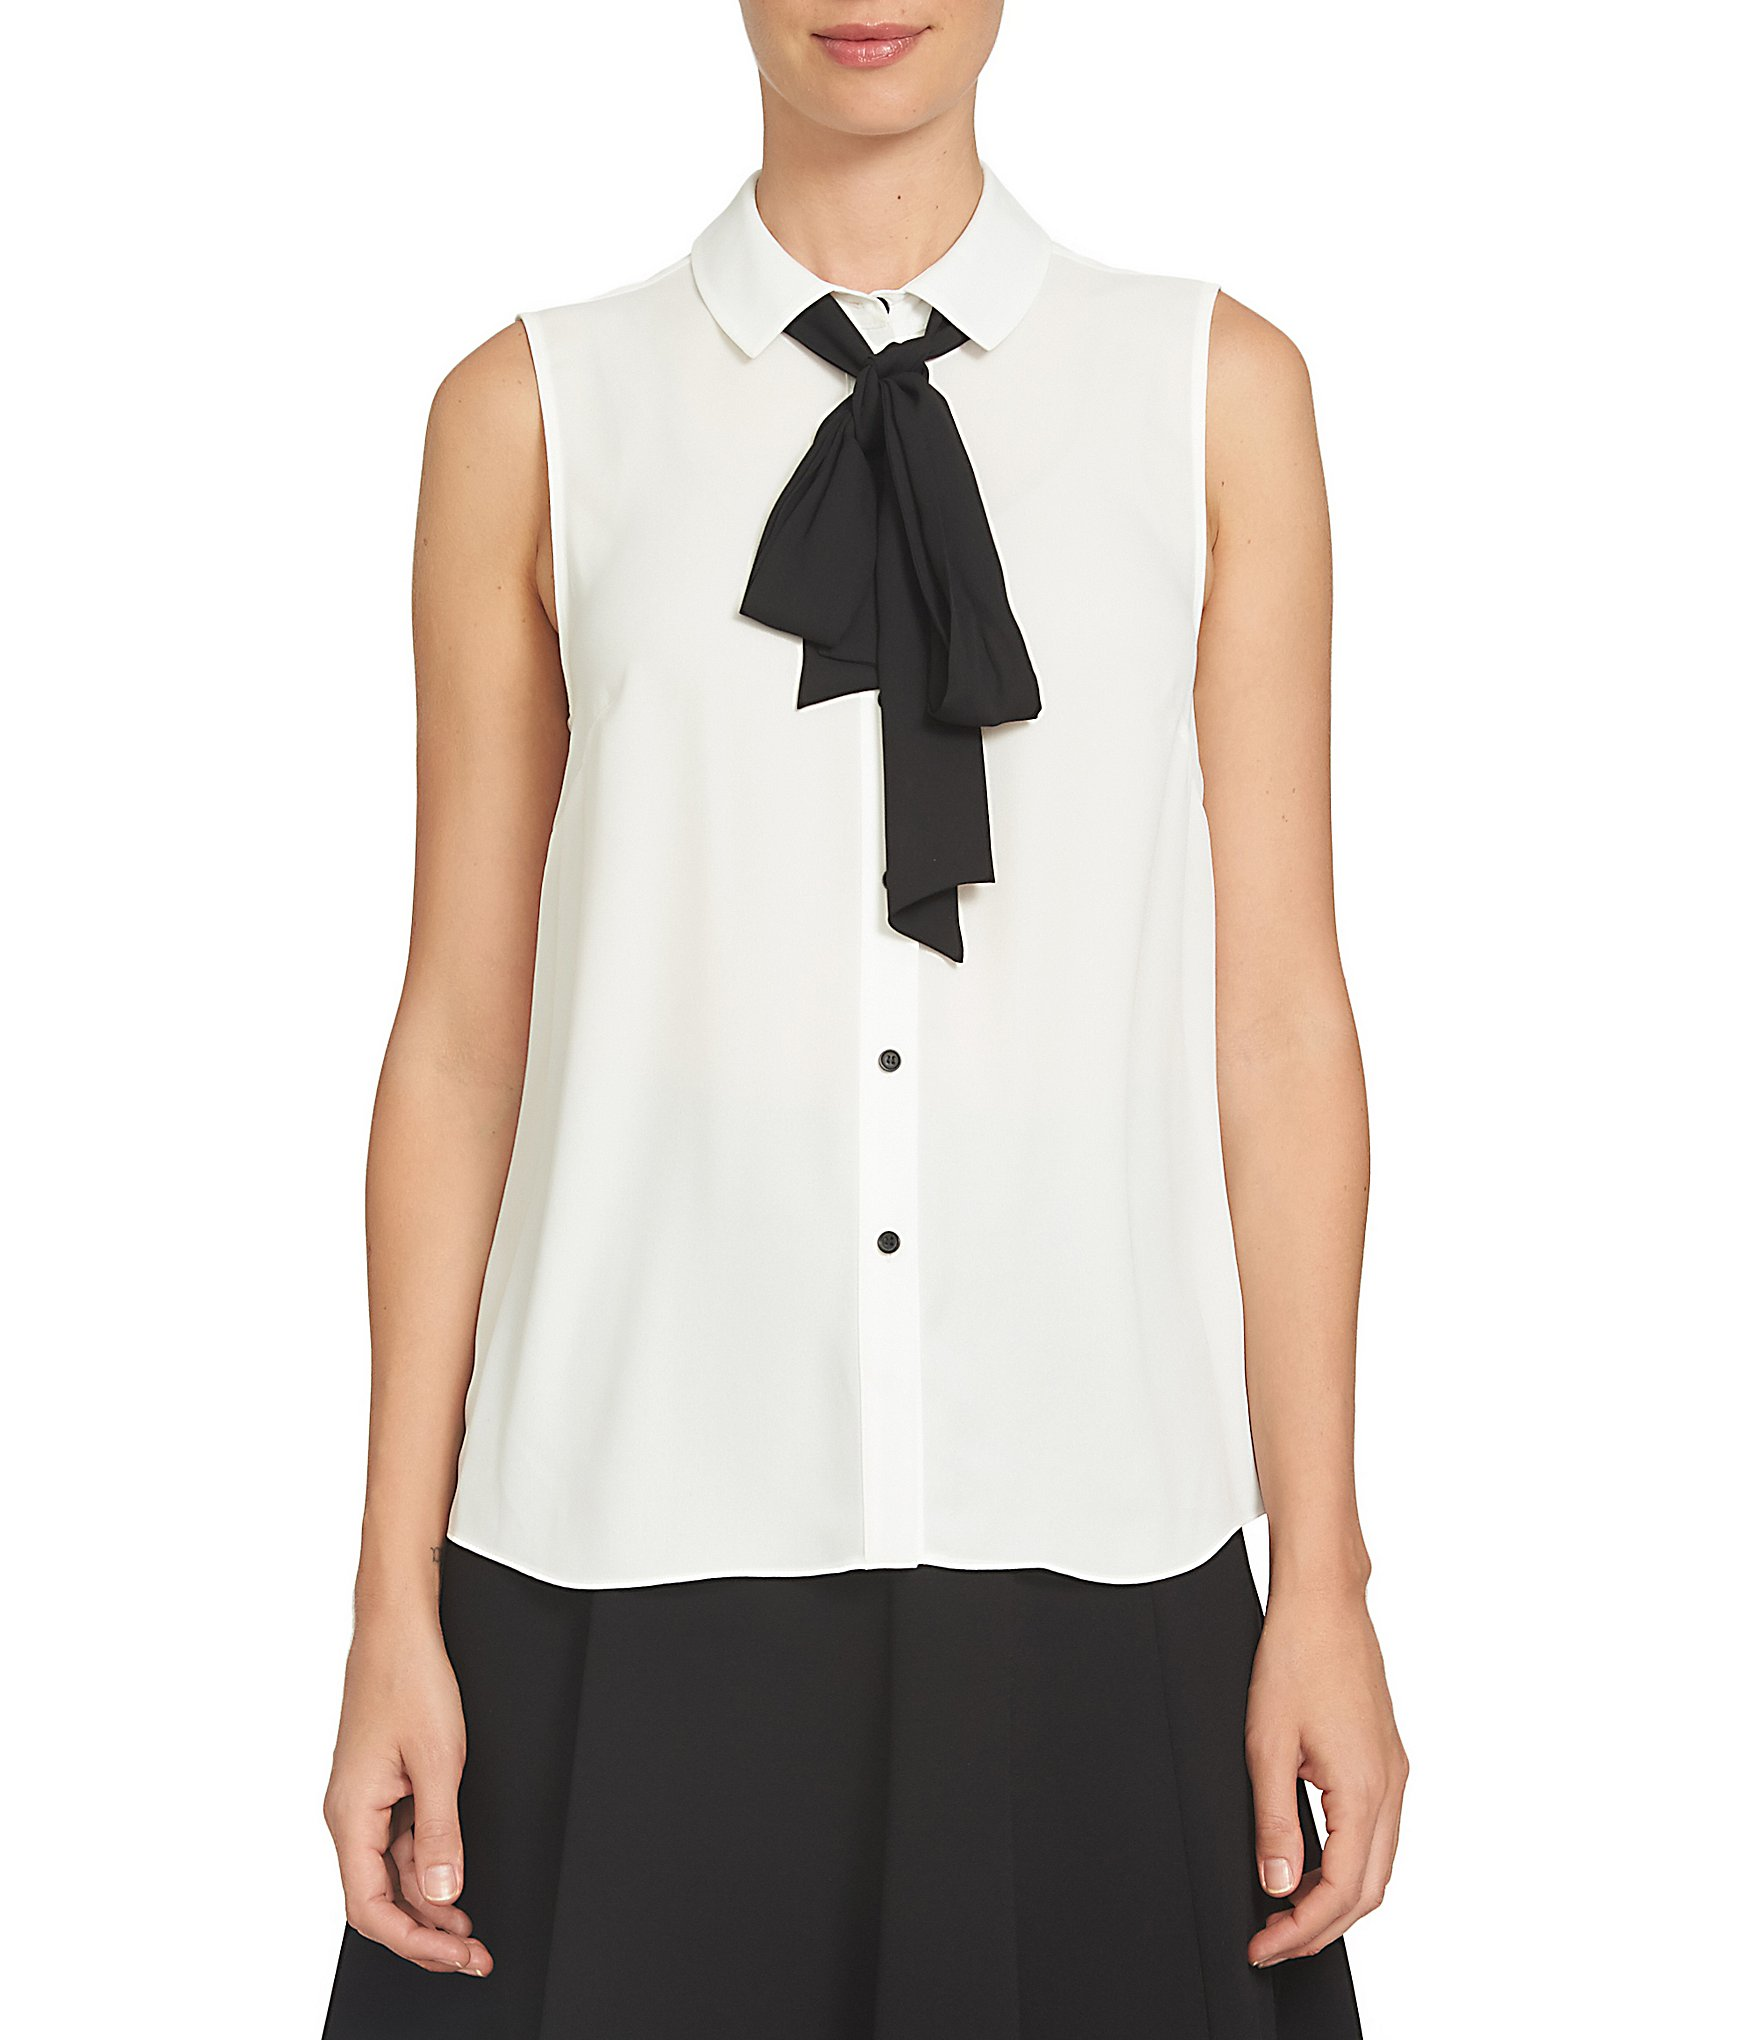 Circle Track Supply >> CeCe Tie Detail Point Collar Sleeveless Blouse | Dillards